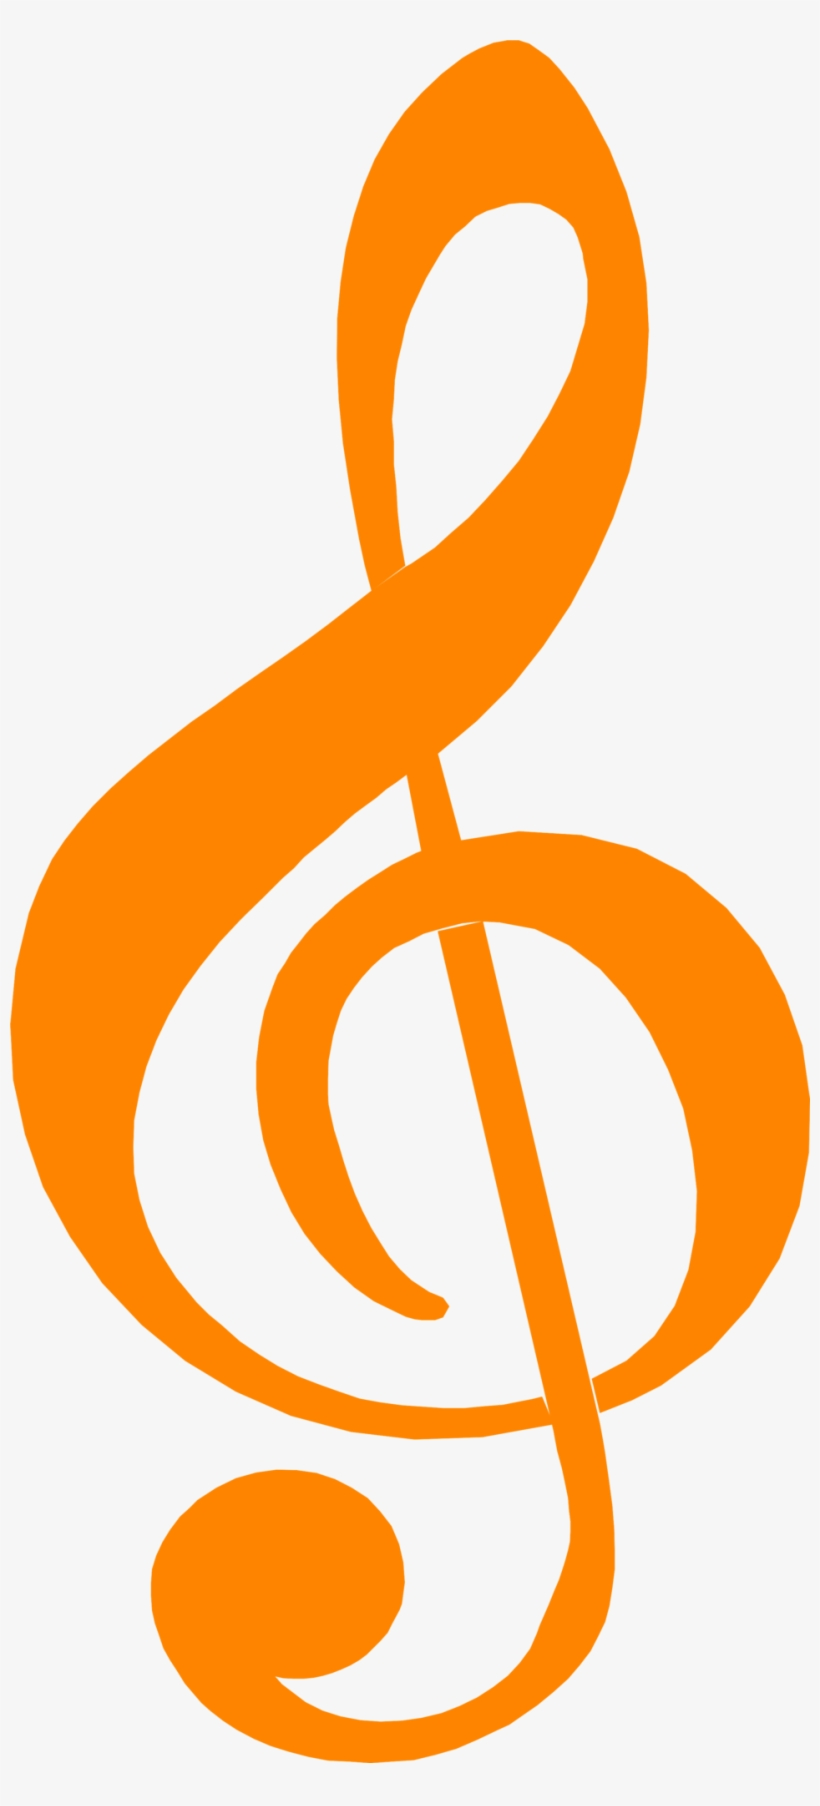 Music Notes Clipart G Clef Notes.